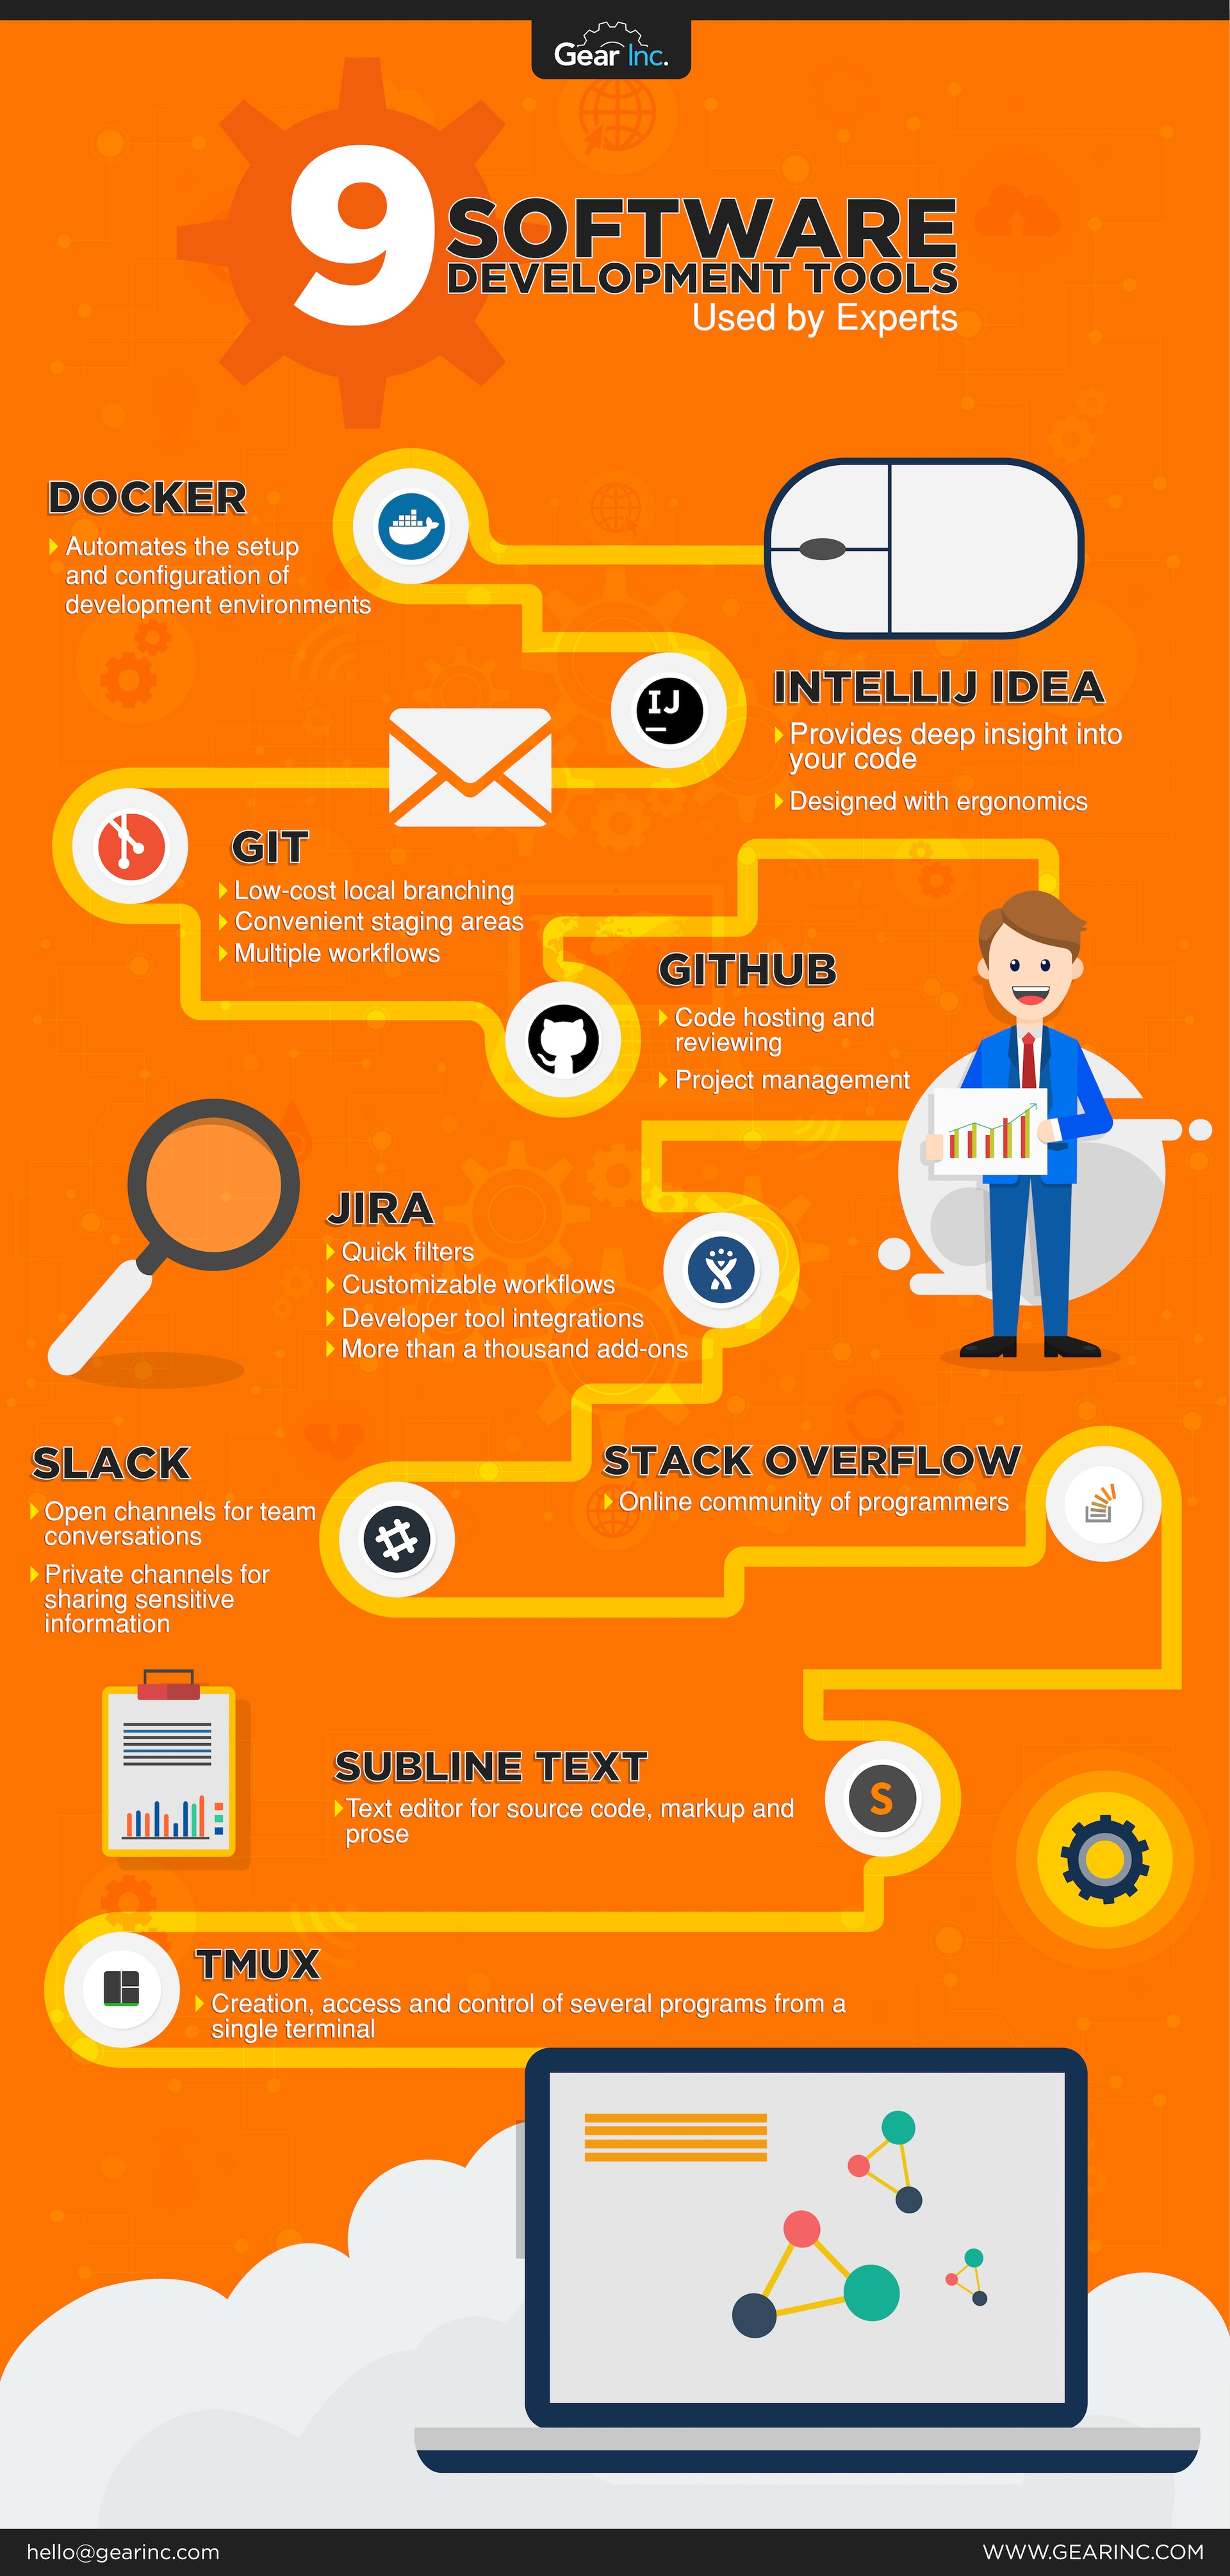 9 Software Development Tools Used by Experts Infographic